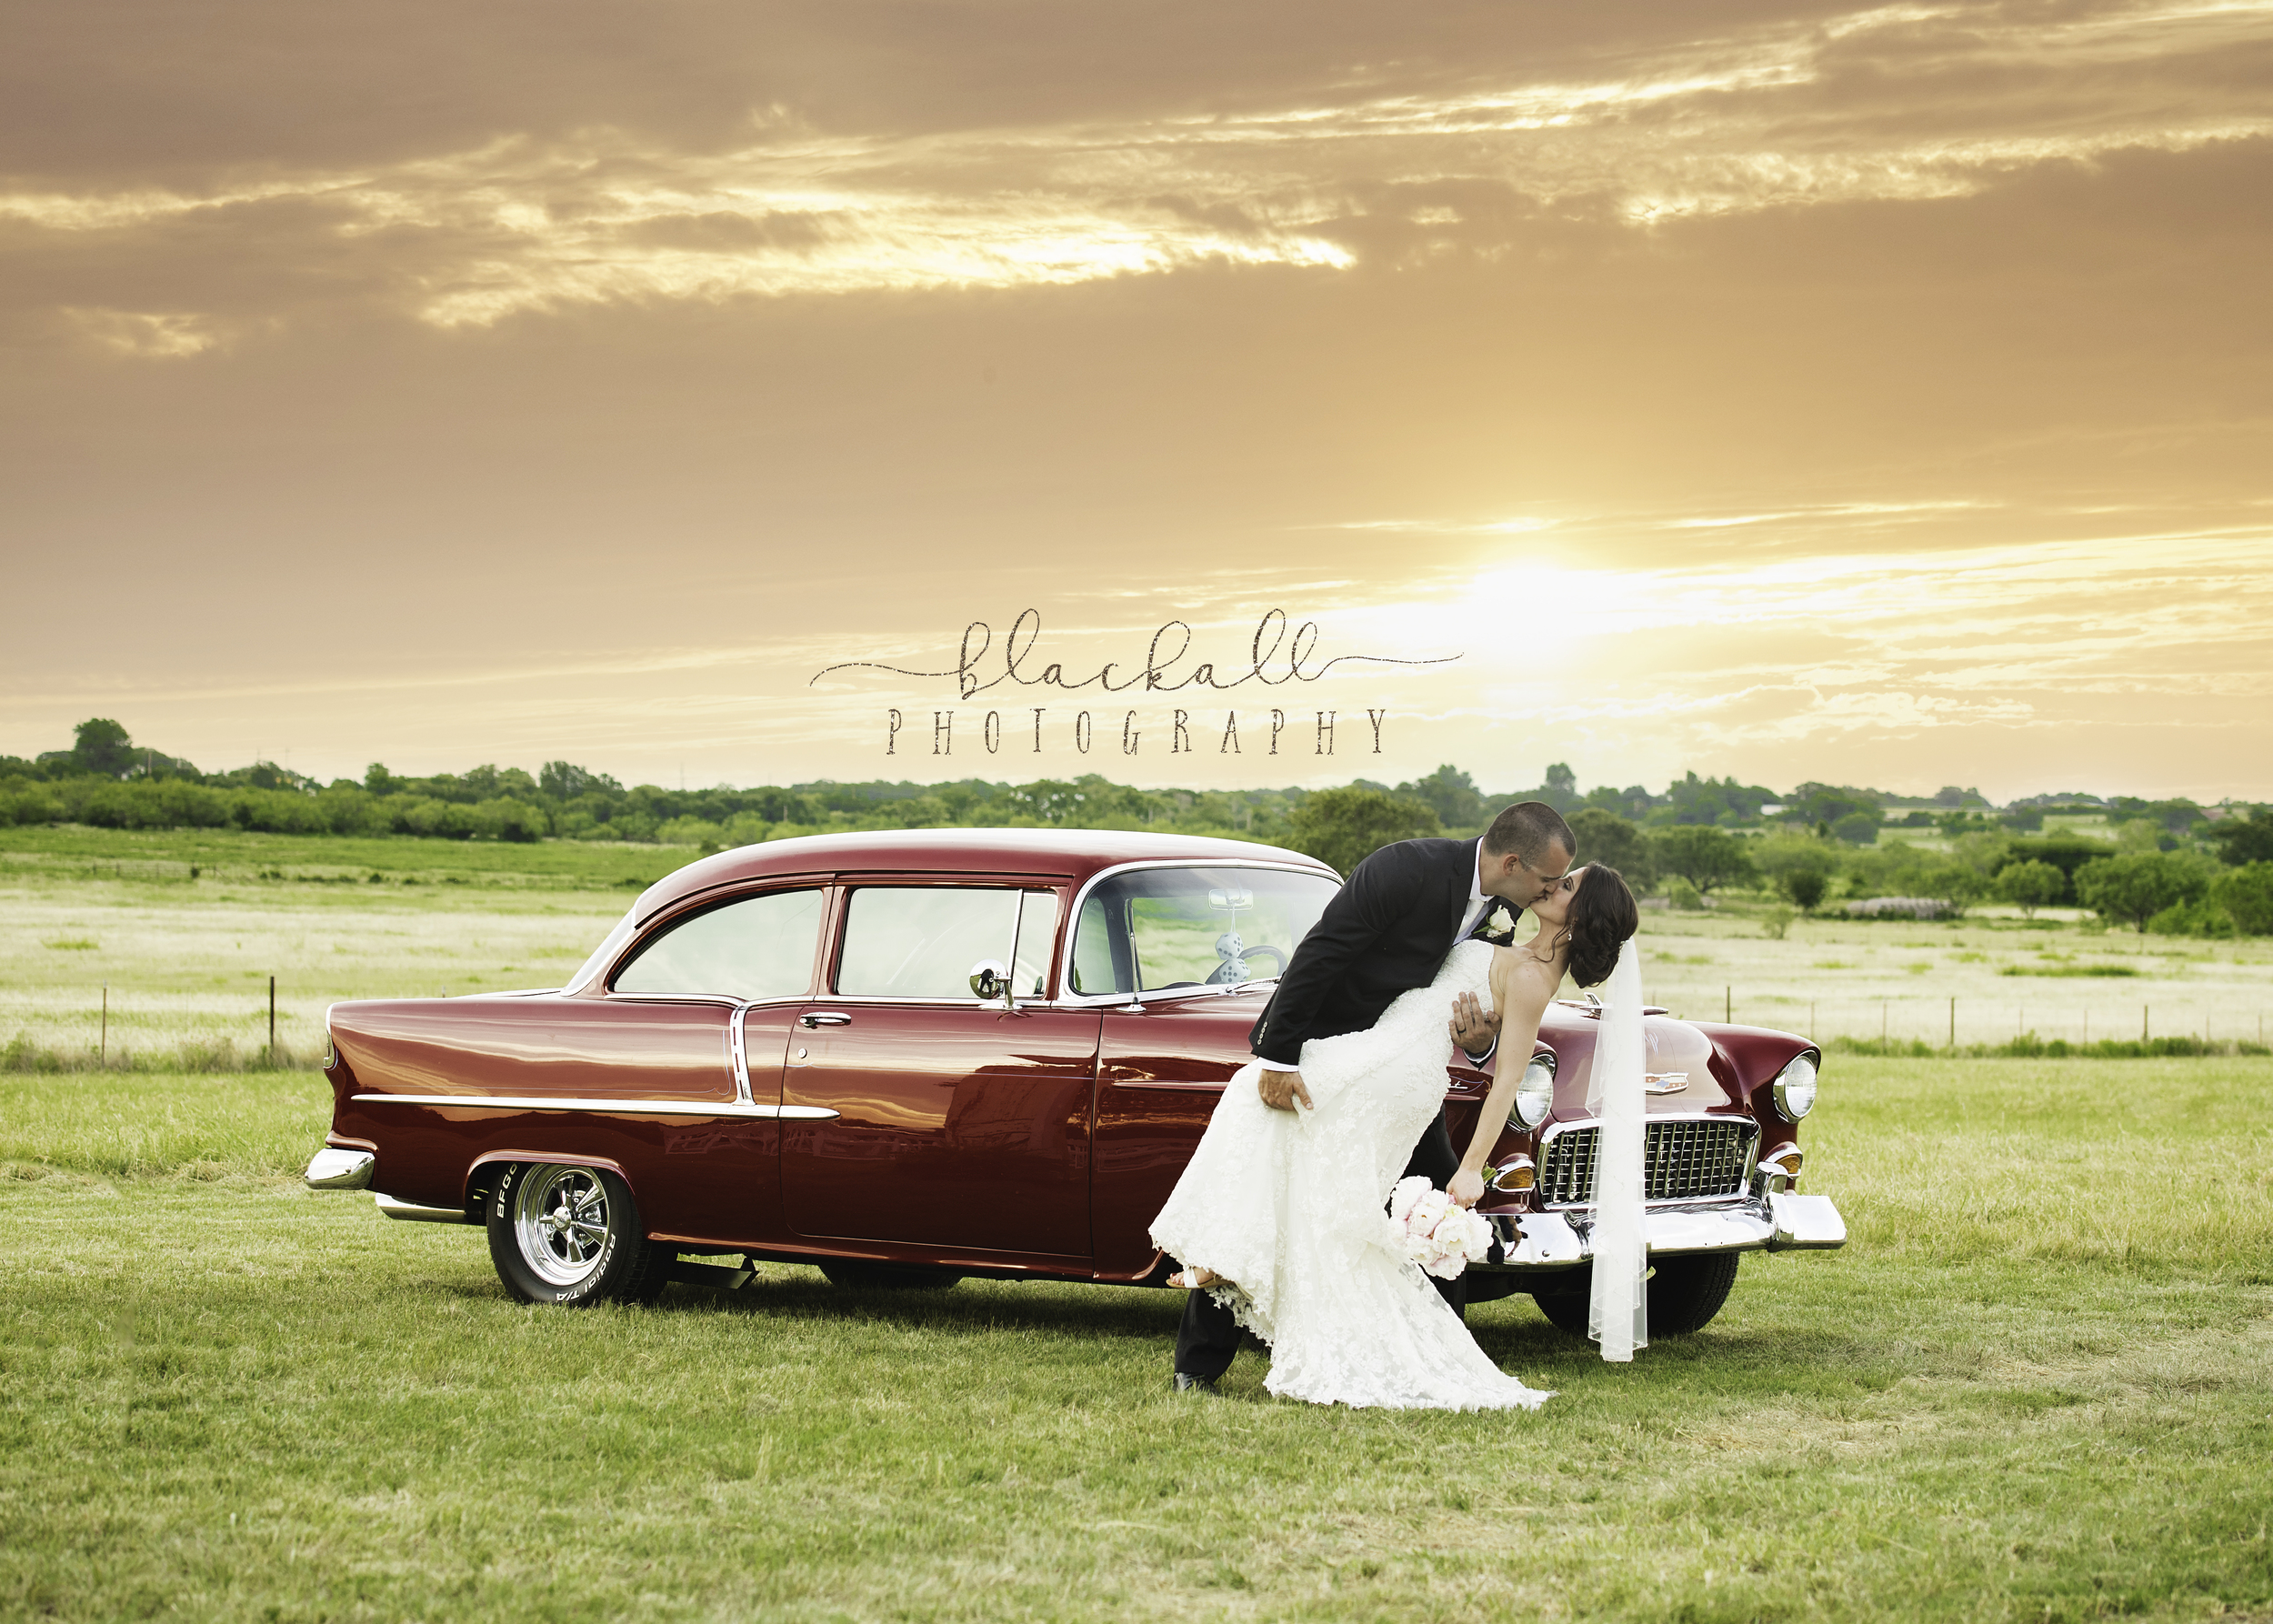 A Texas sunset & '55 Chevy...not sure which one is prettier!